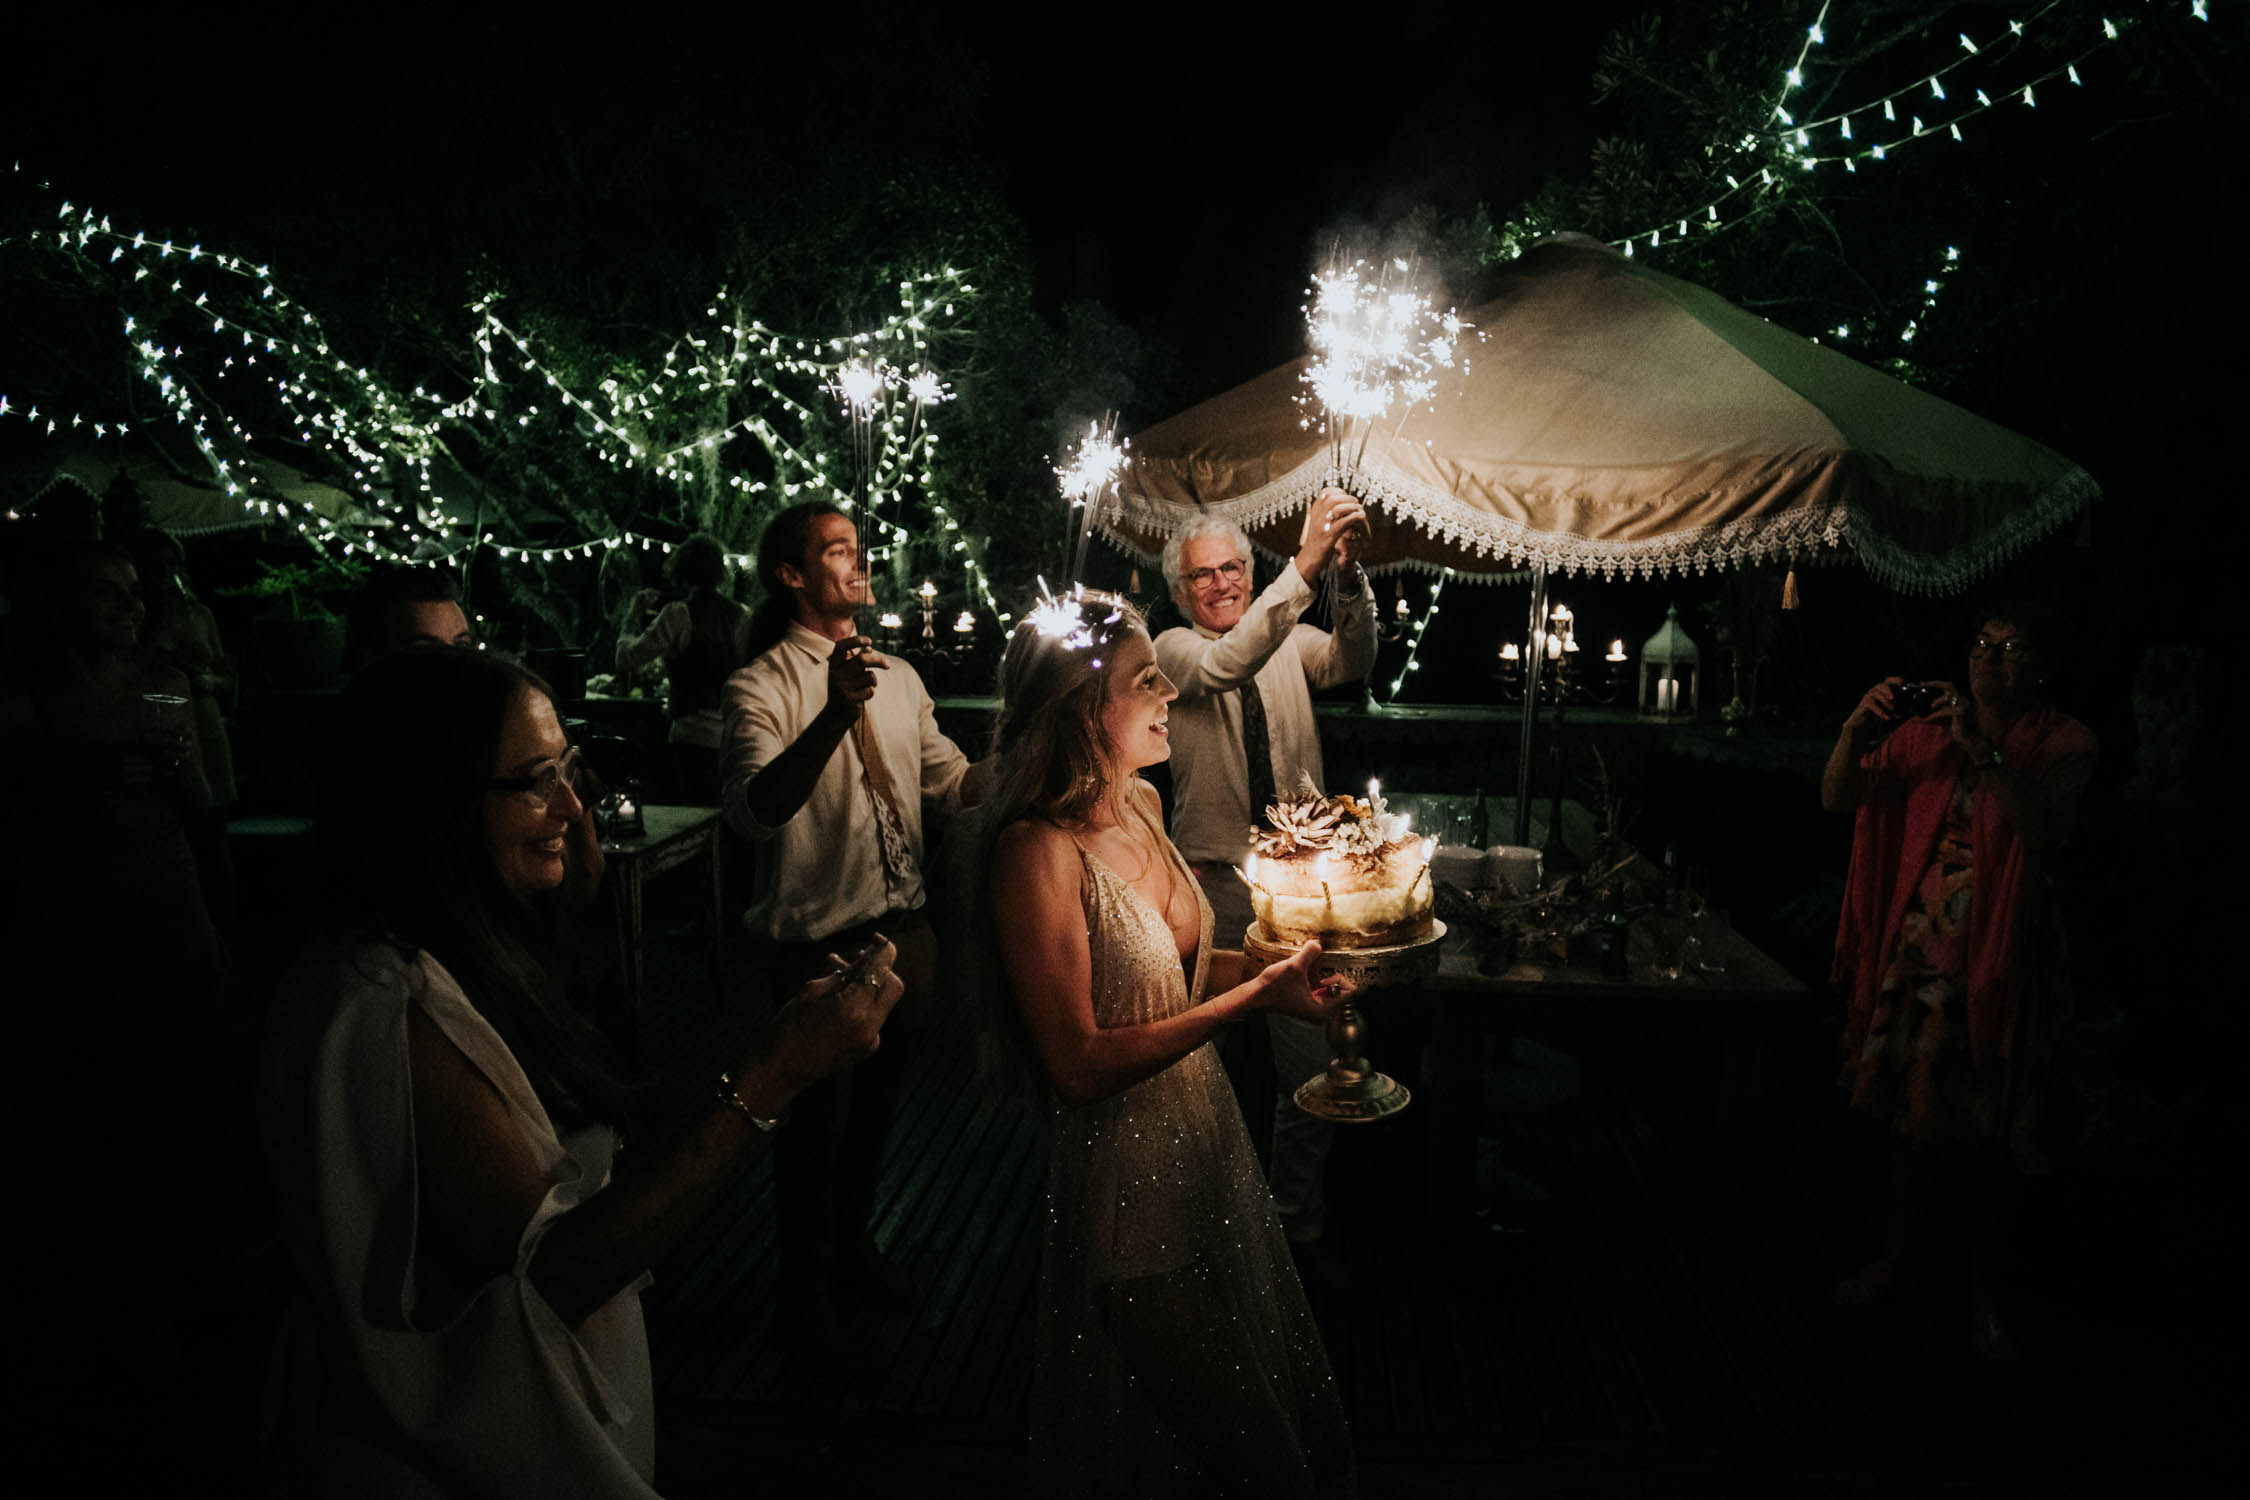 Bride with surprise birthday cake from bridesmaid